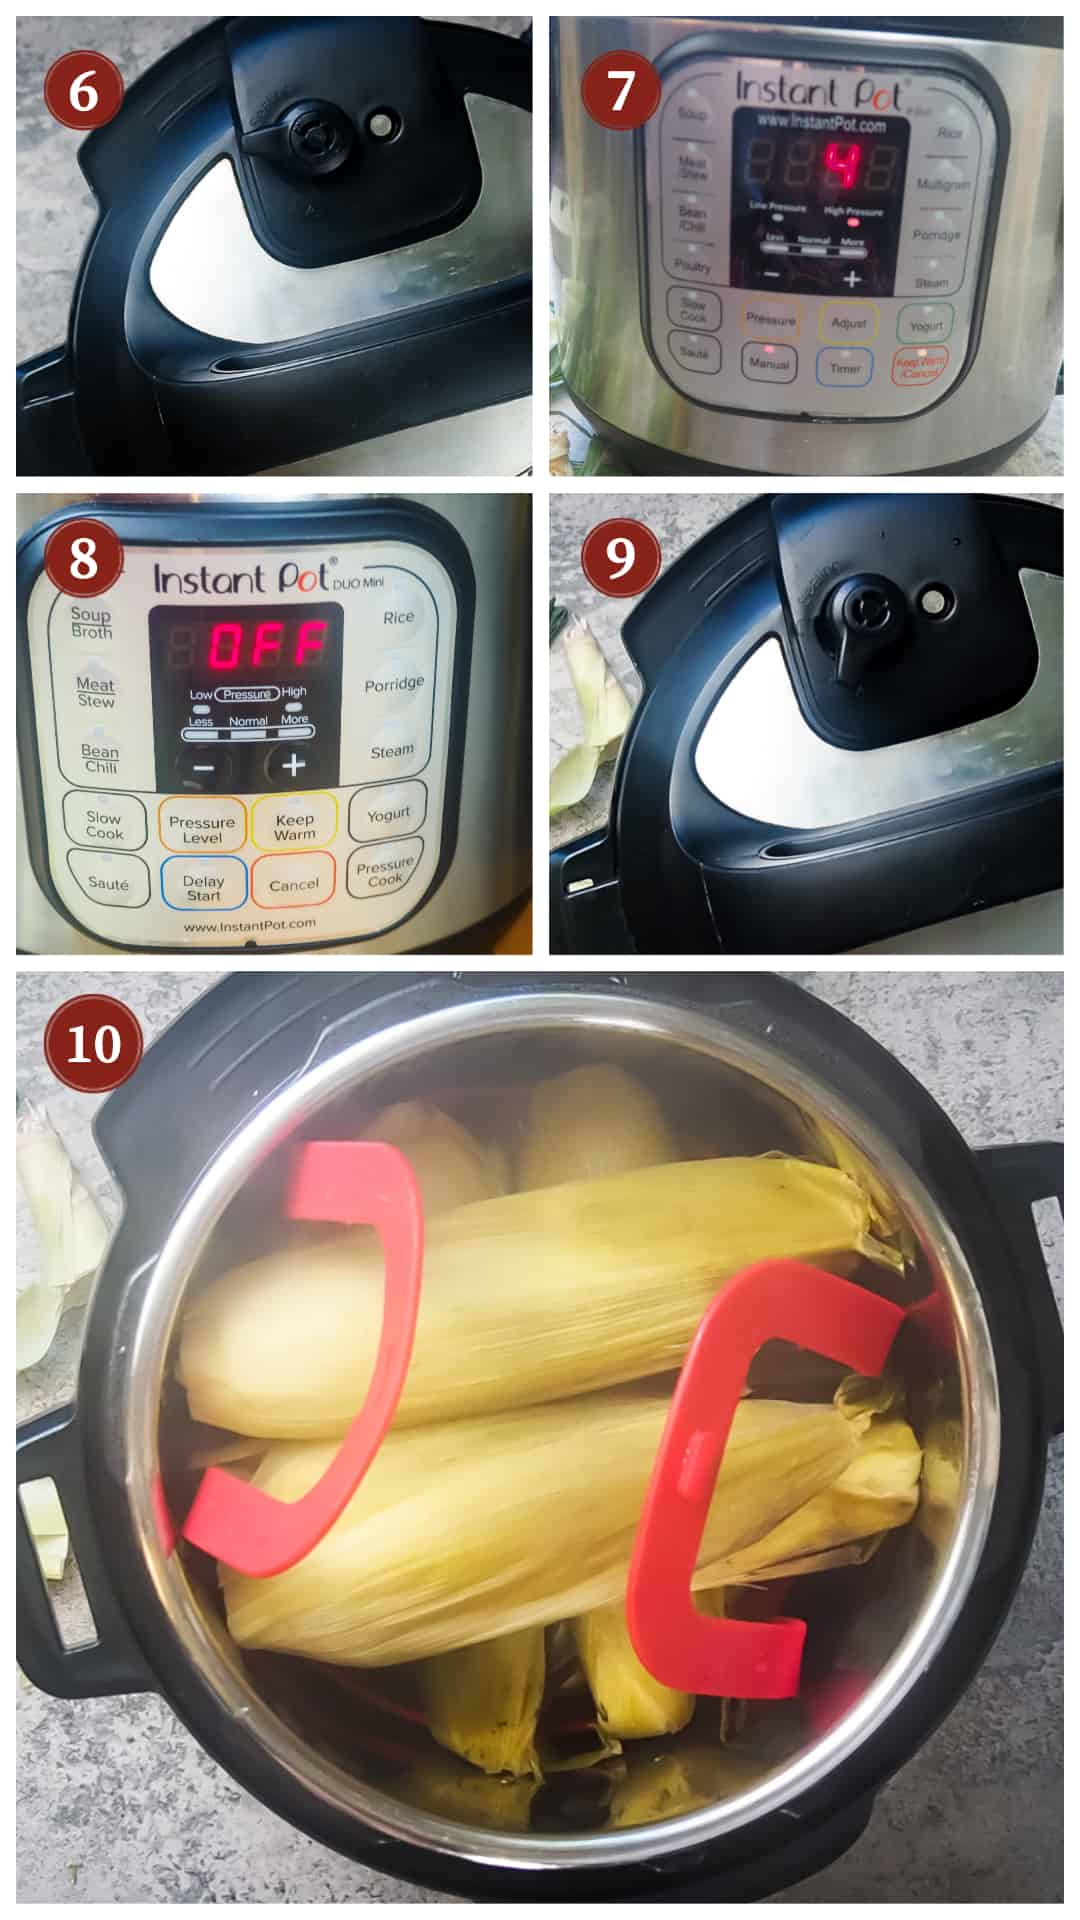 a process collage of cooking corn on the cob in an instant pot, steps 6 - 10